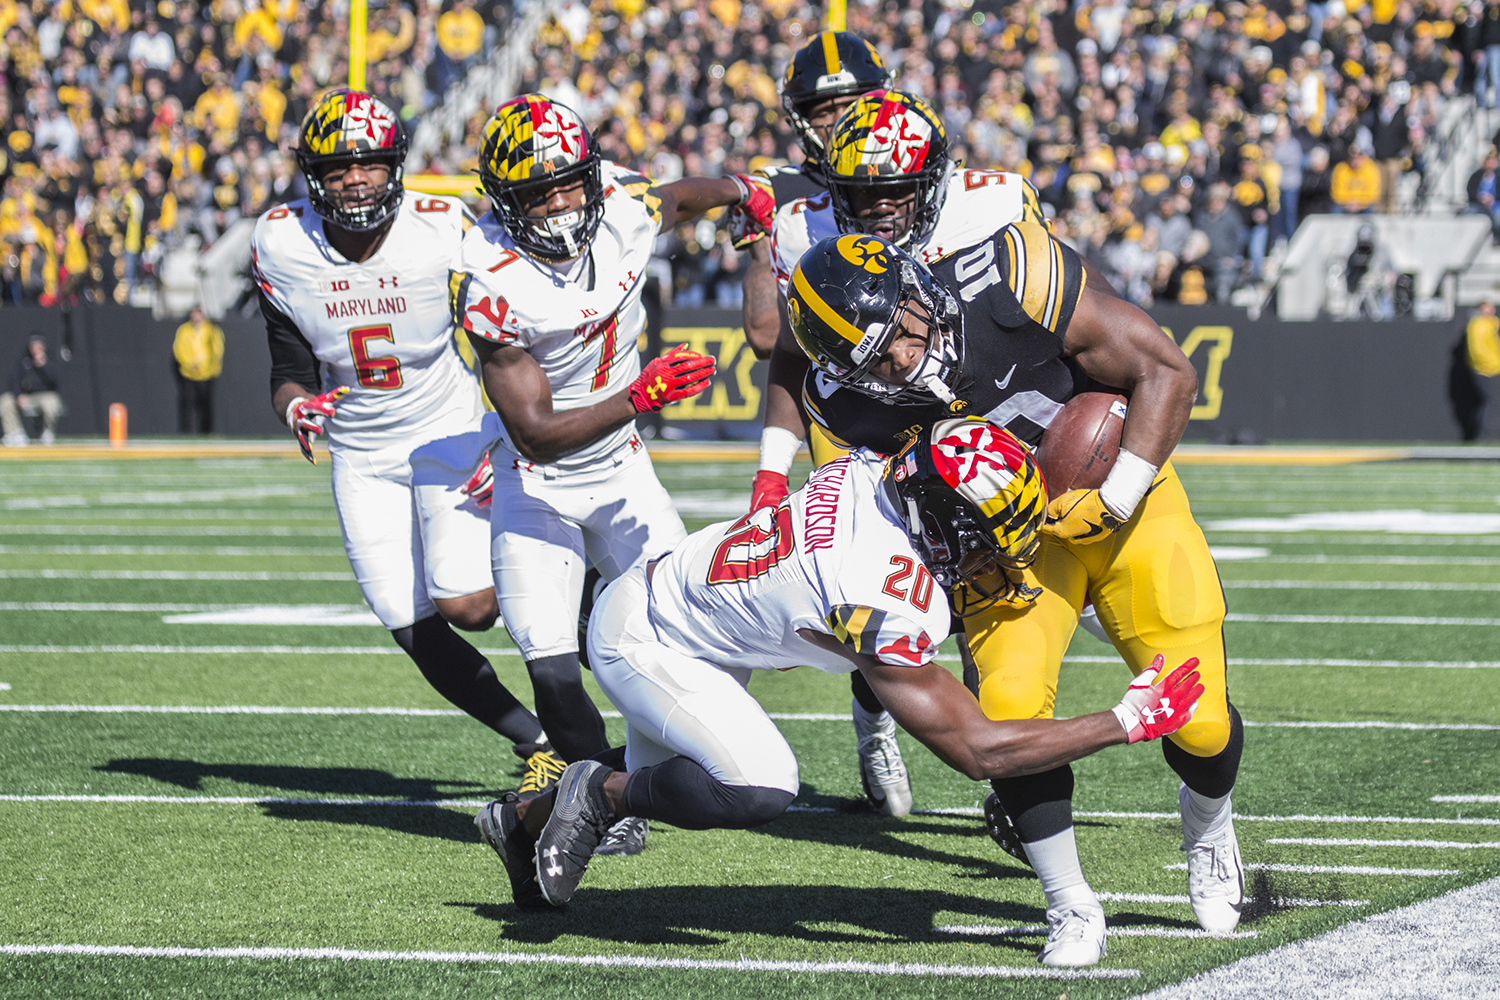 Iowa+running+back+Mekhi+Sargent+gets+tackled+on+the+sideline+during+a+football+game+between+Iowa+and+Maryland+in+Kinnick+Stadium+on+Saturday%2C+October+20%2C+2018.+The+Hawkeyes+defeated+the+Terrapins%2C+23-0.+